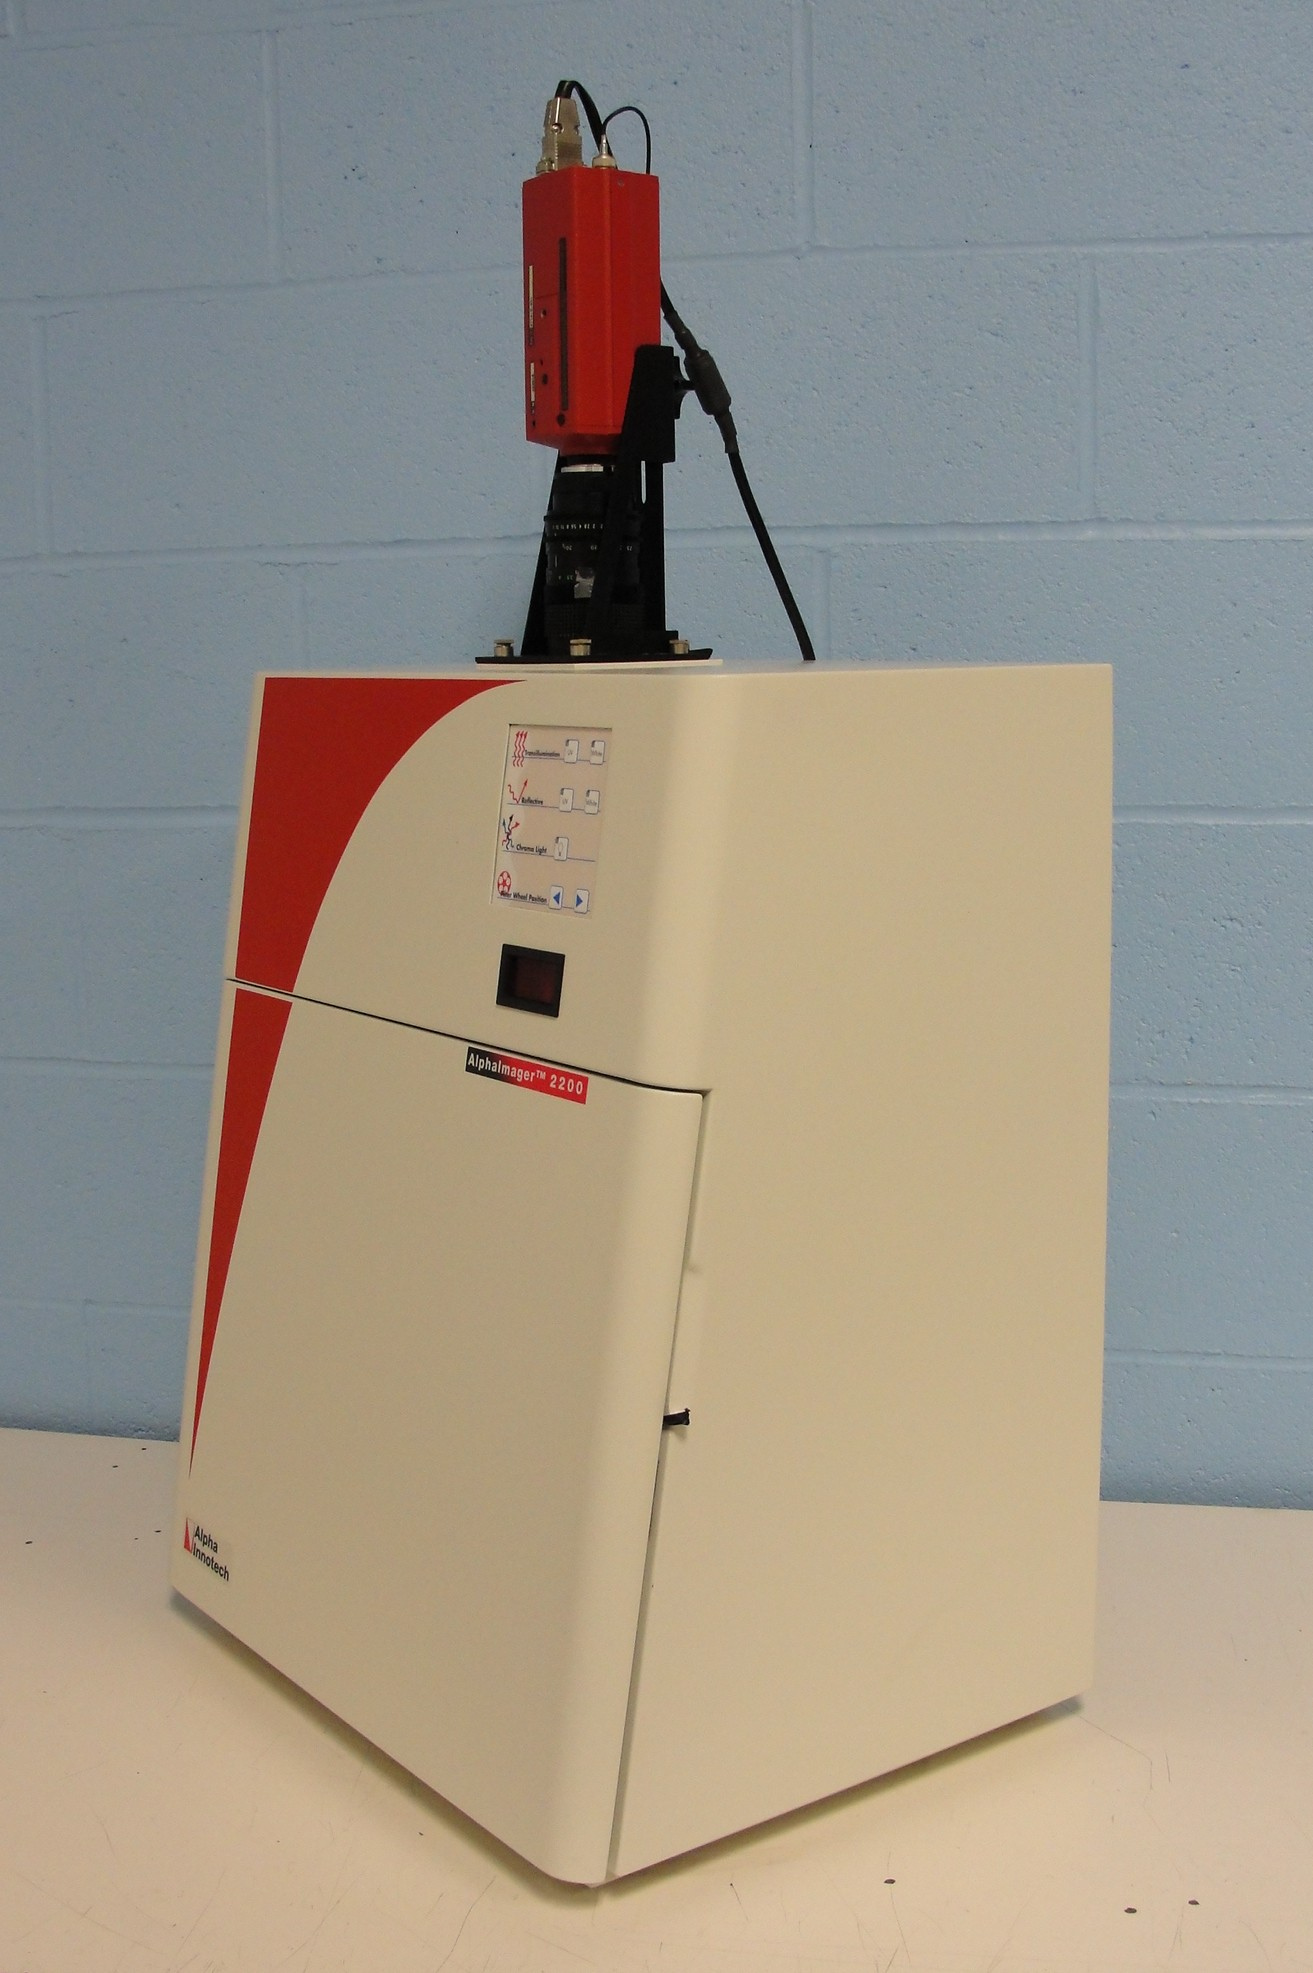 Refurbished Alpha Innotech Alphaimager Image Analysis System